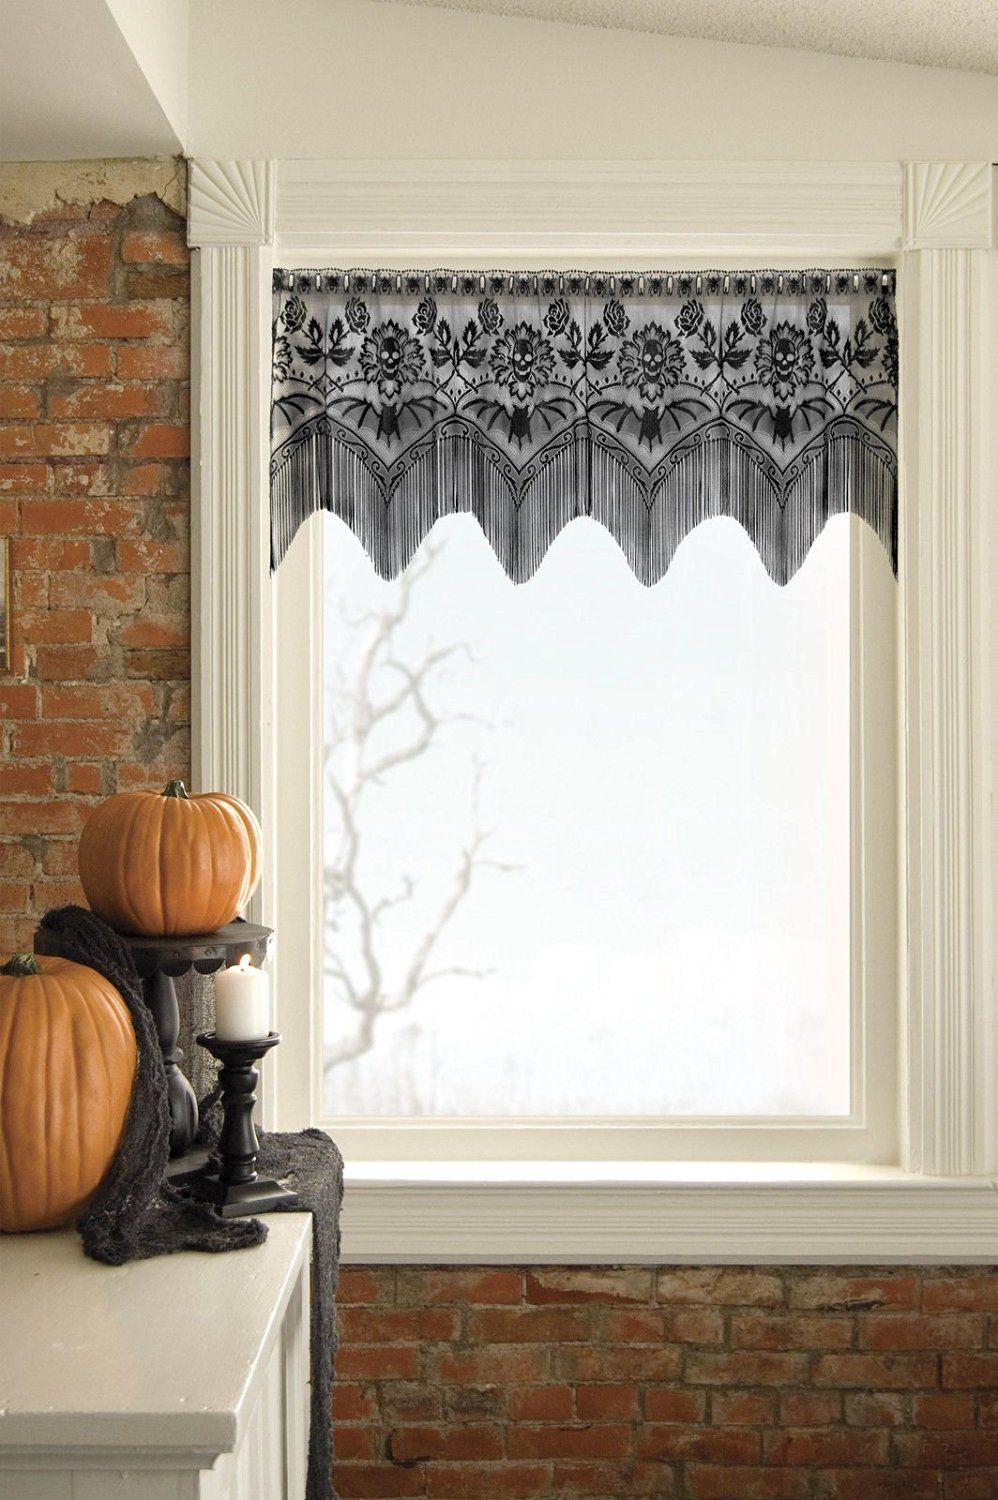 Spiders and skulls, complete with #gothic fringe, set a scary scene - halloween window decor